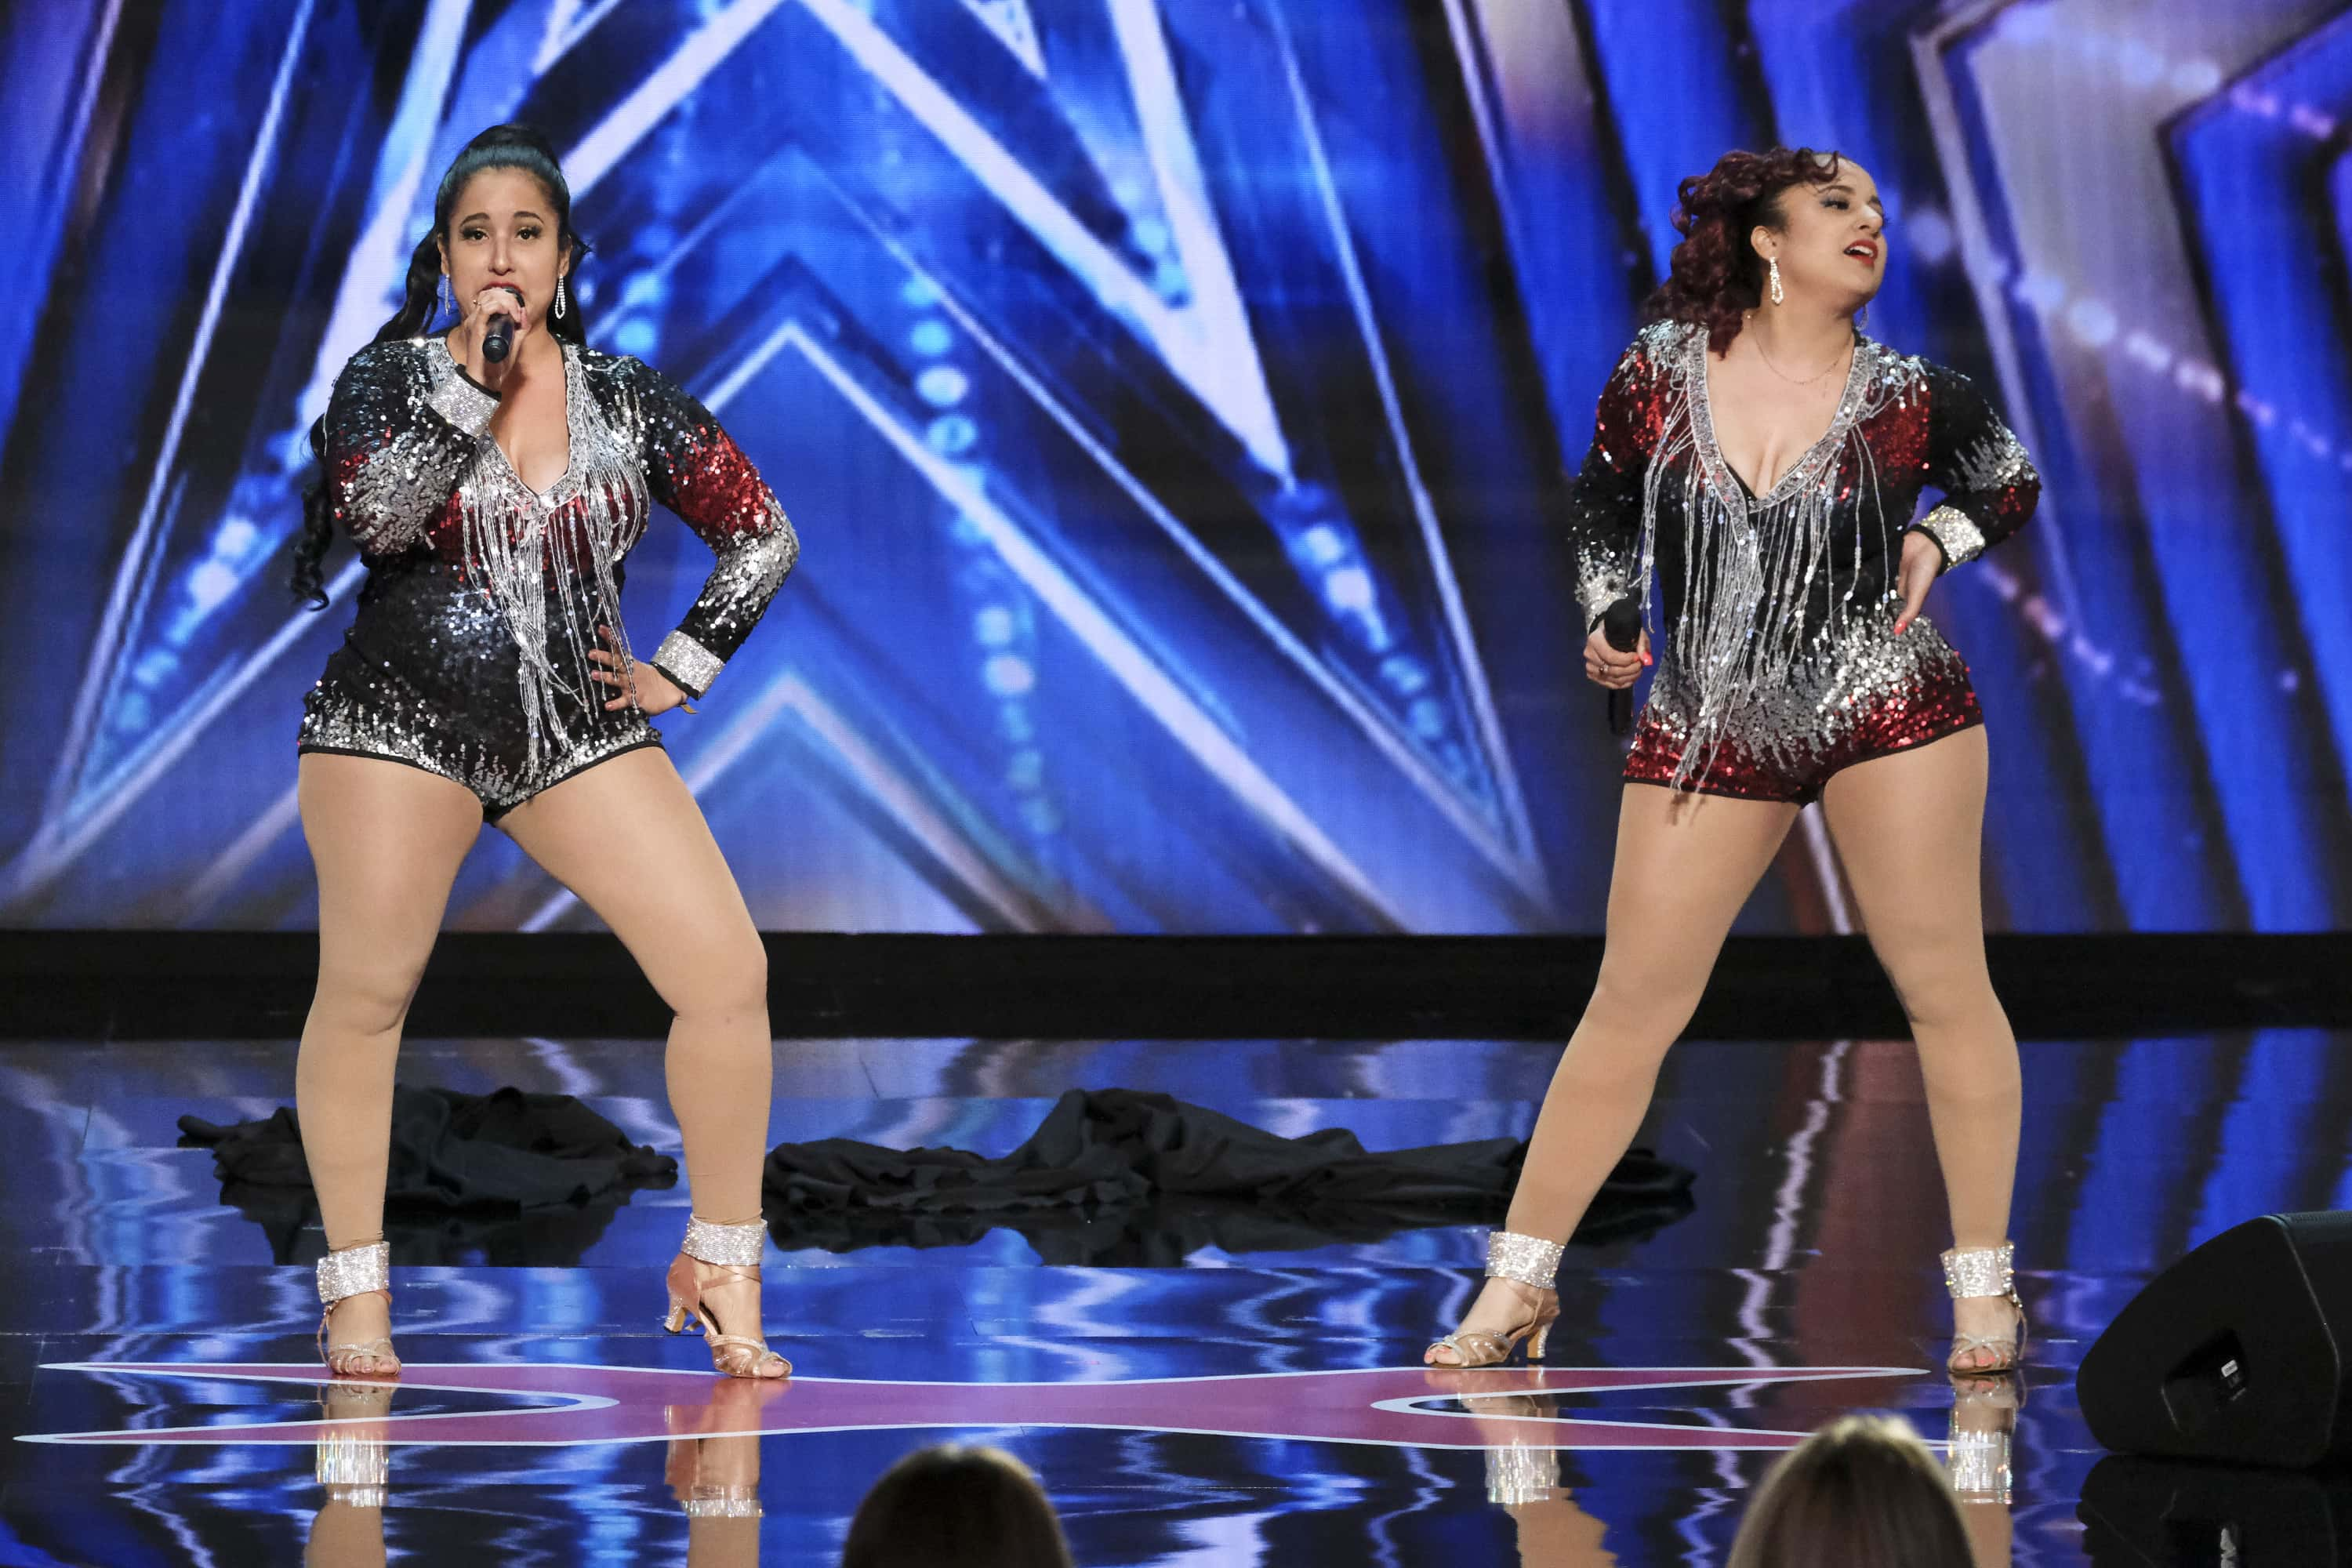 America S Got Talent Season 15 Double Dragon Twins Light Up The Stage With Their Fiery Vocals Meaww